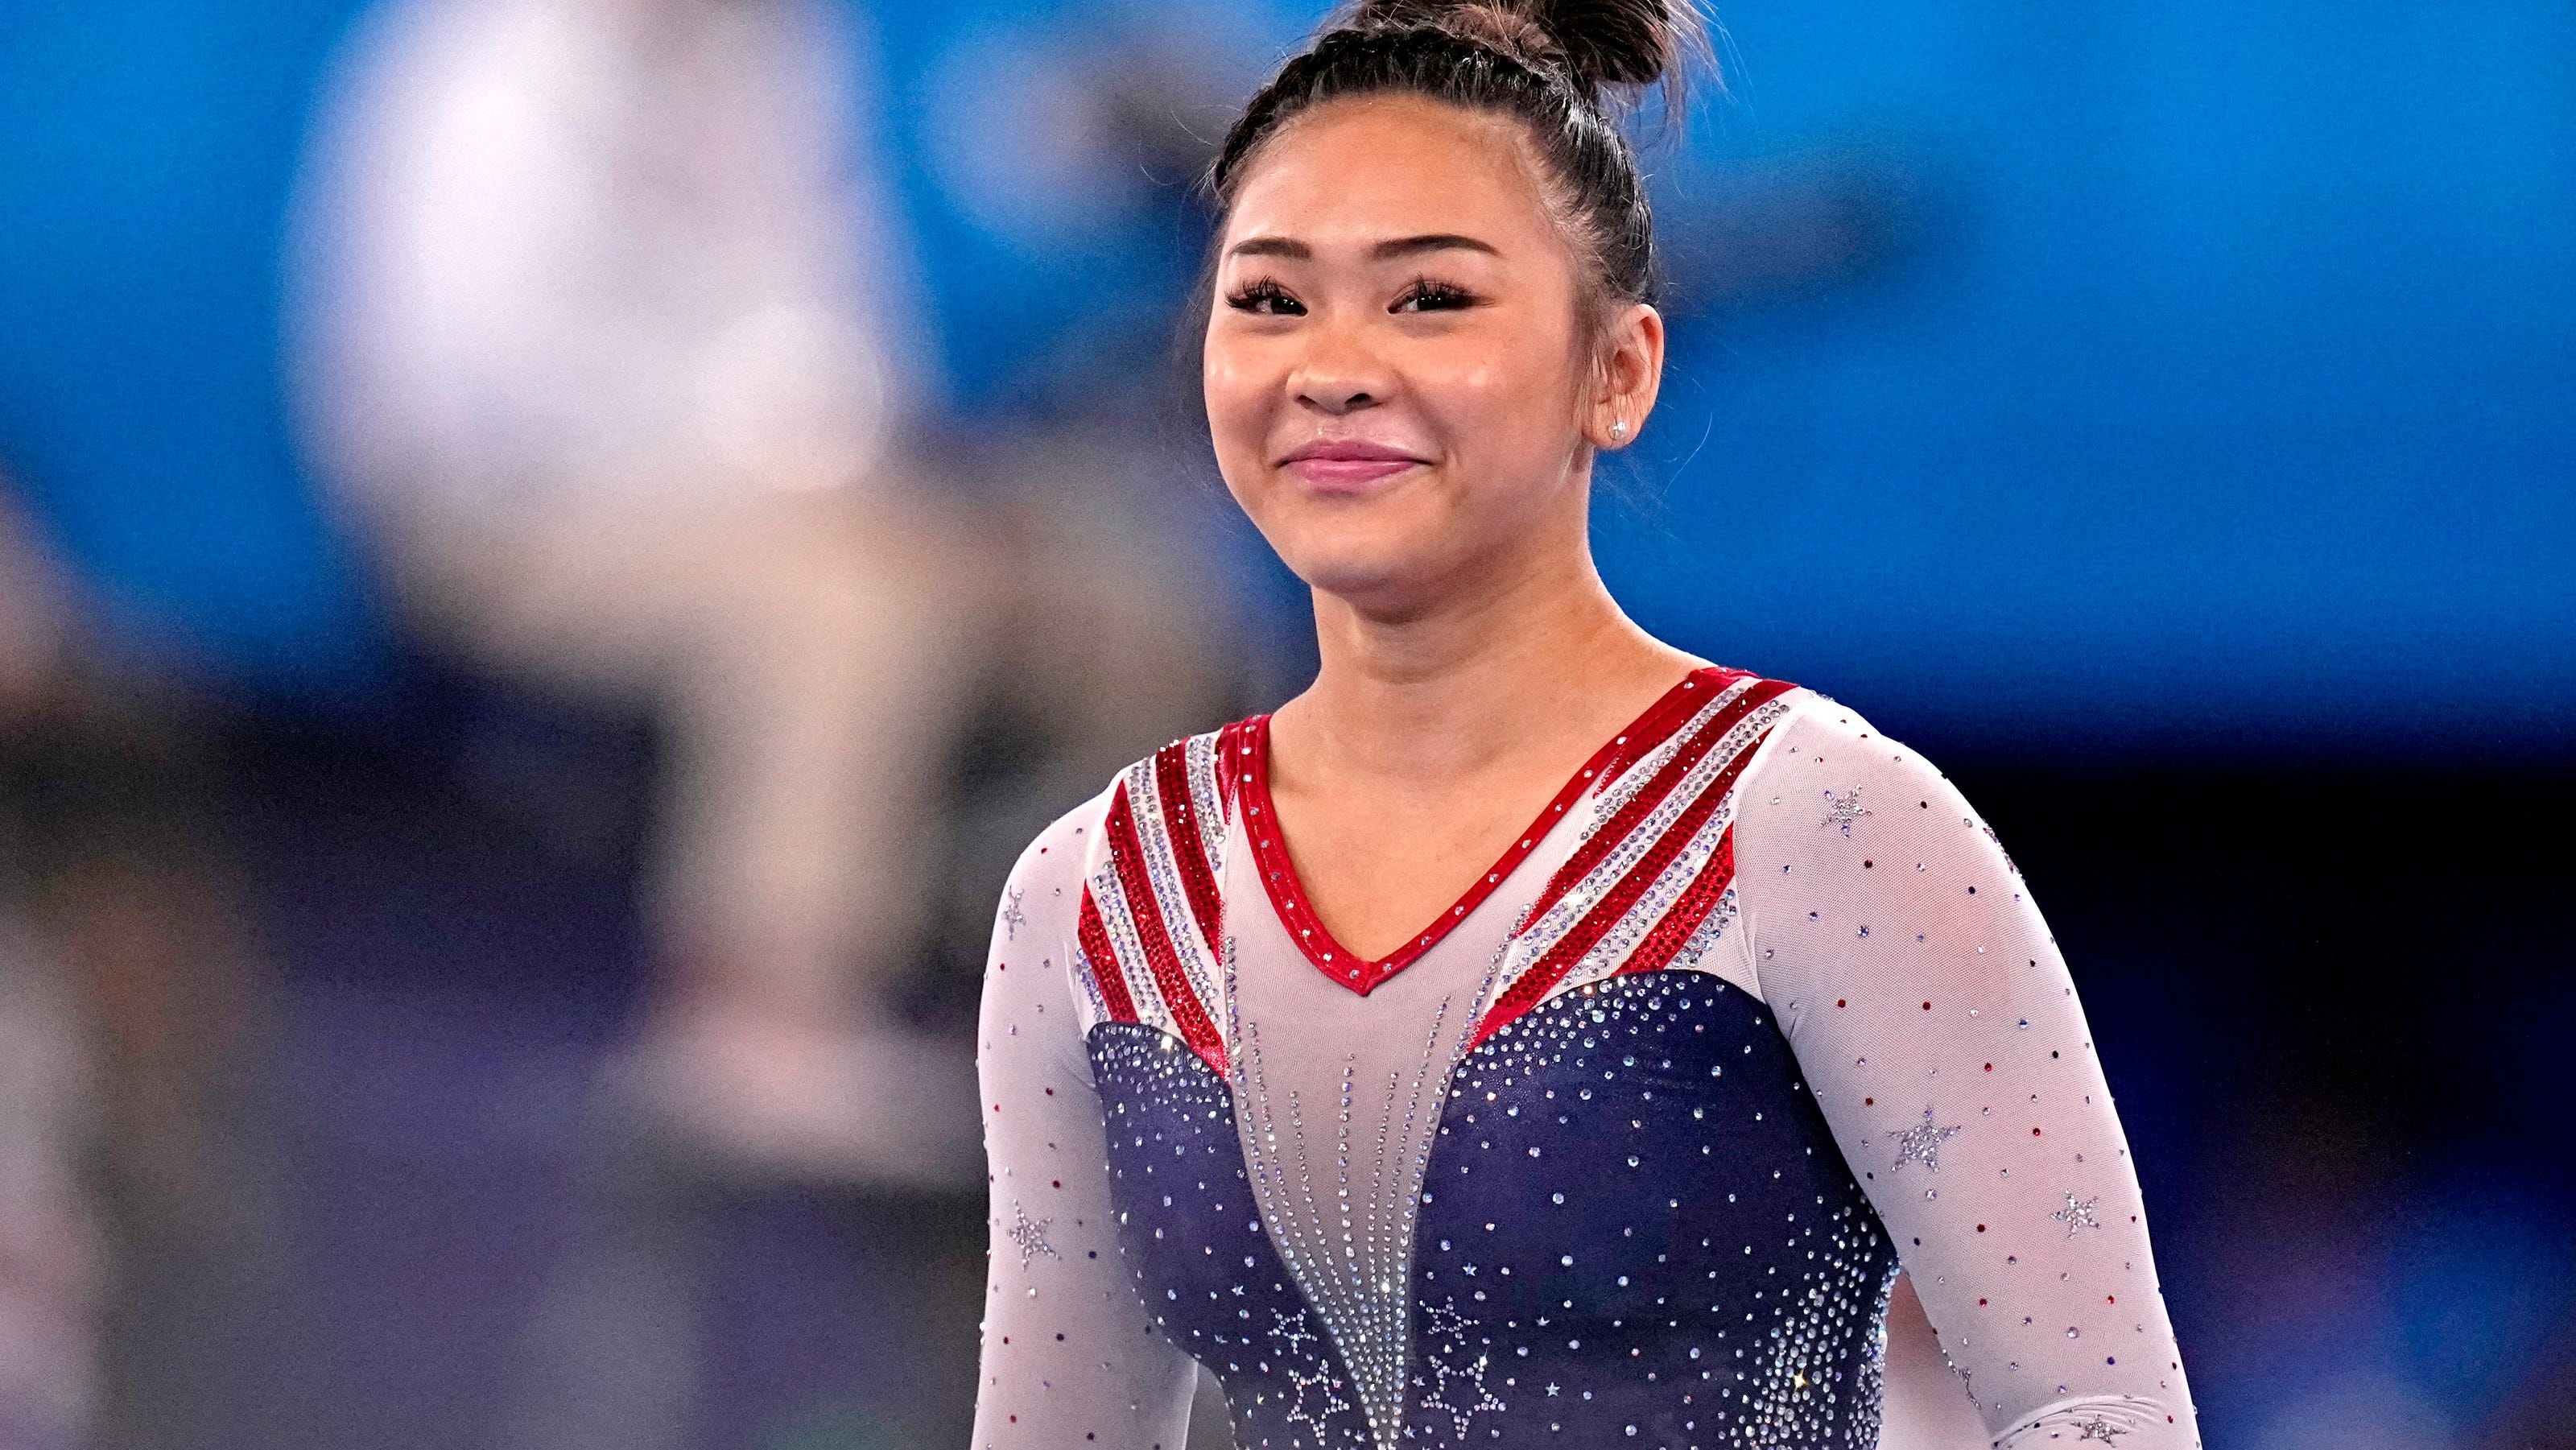 Watch Olympic gymnast Suni Lee's family celebrate her gold medal in heartwarming videos